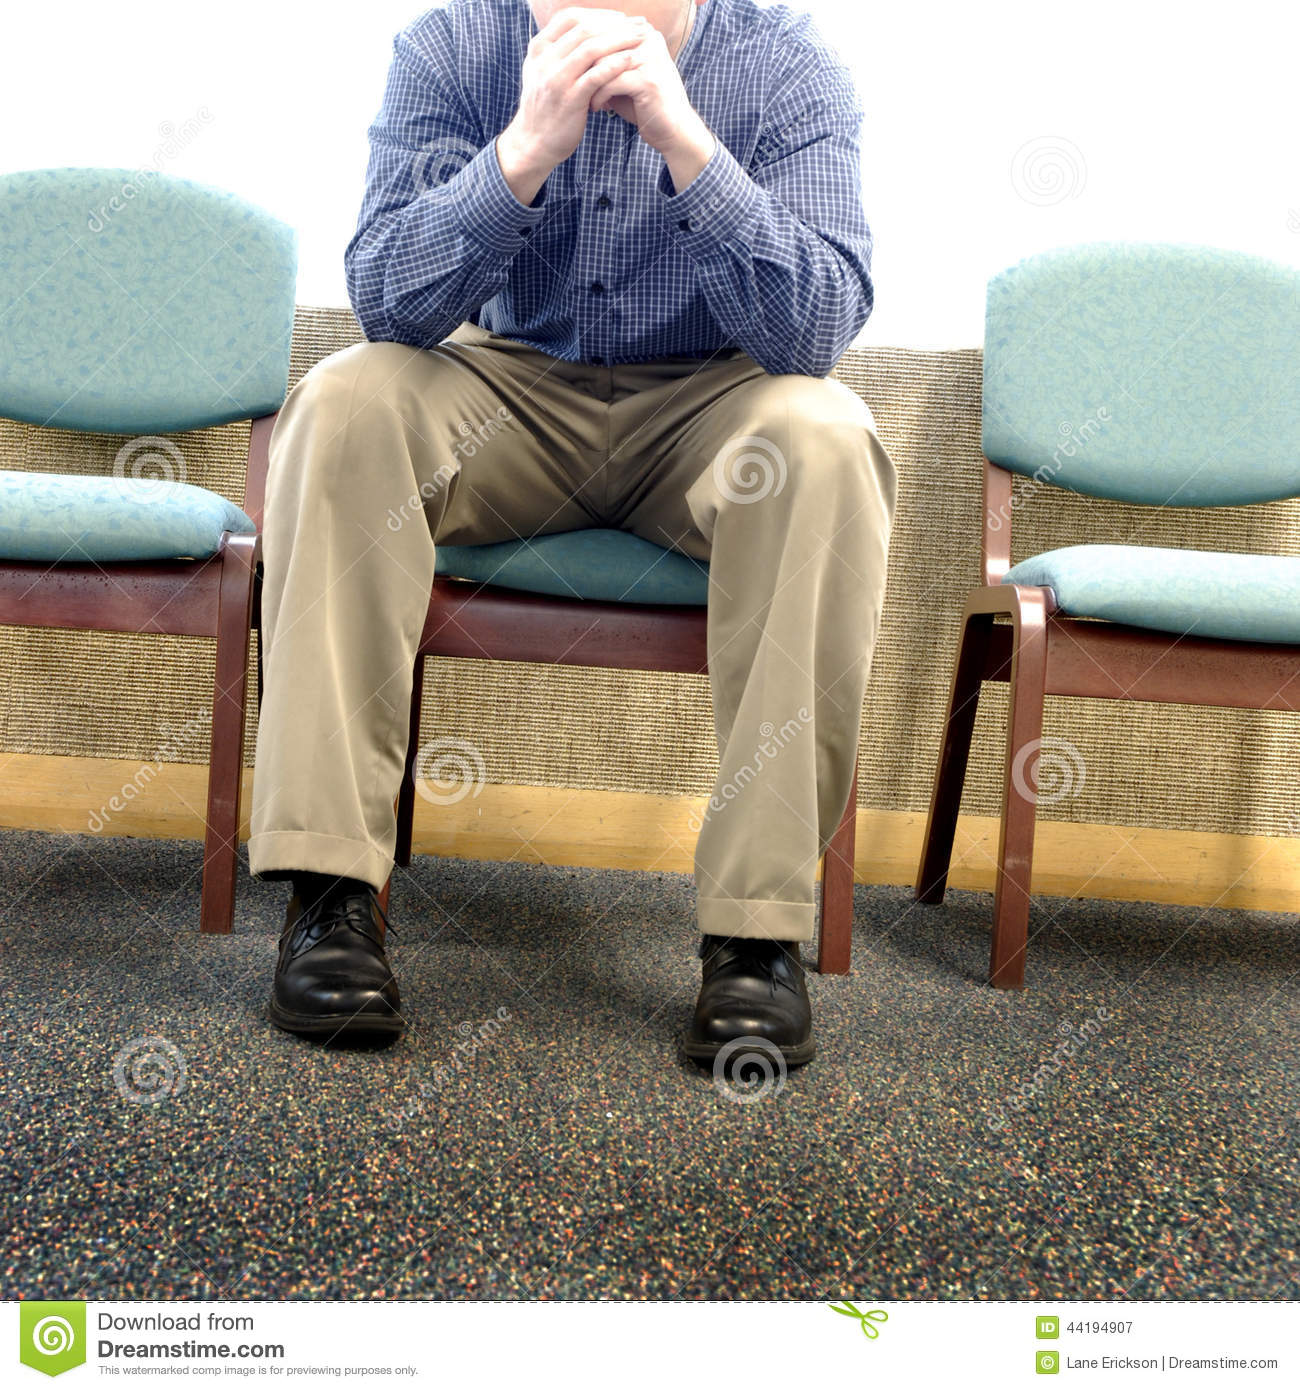 Man In Hospital Waiting Room Stock Image  Image of head